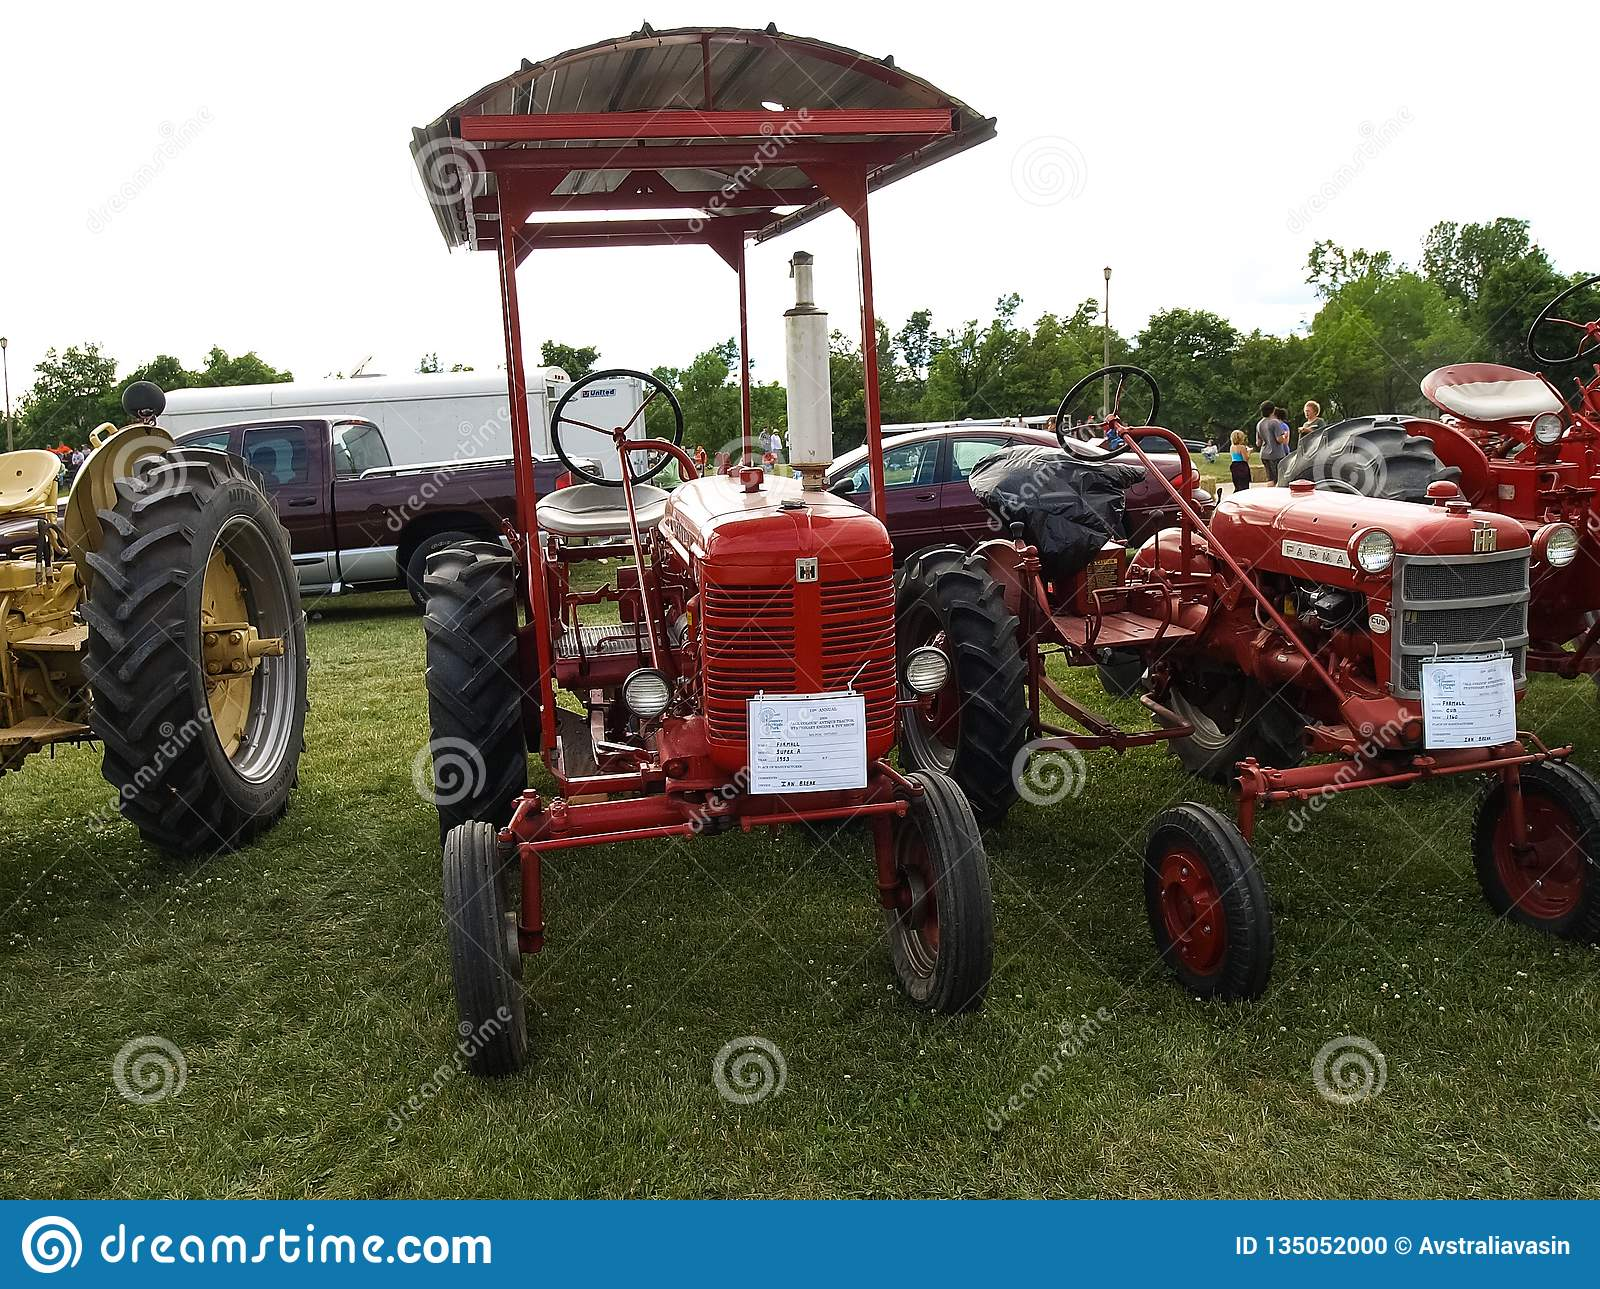 On the eve of the winter antiques show, barron's penta sought advice from three top exhibitors. Exhibition Of Antique Tractors Tractor Show Agreecultural Mach Editorial Image Image Of Industry Farm 135052000